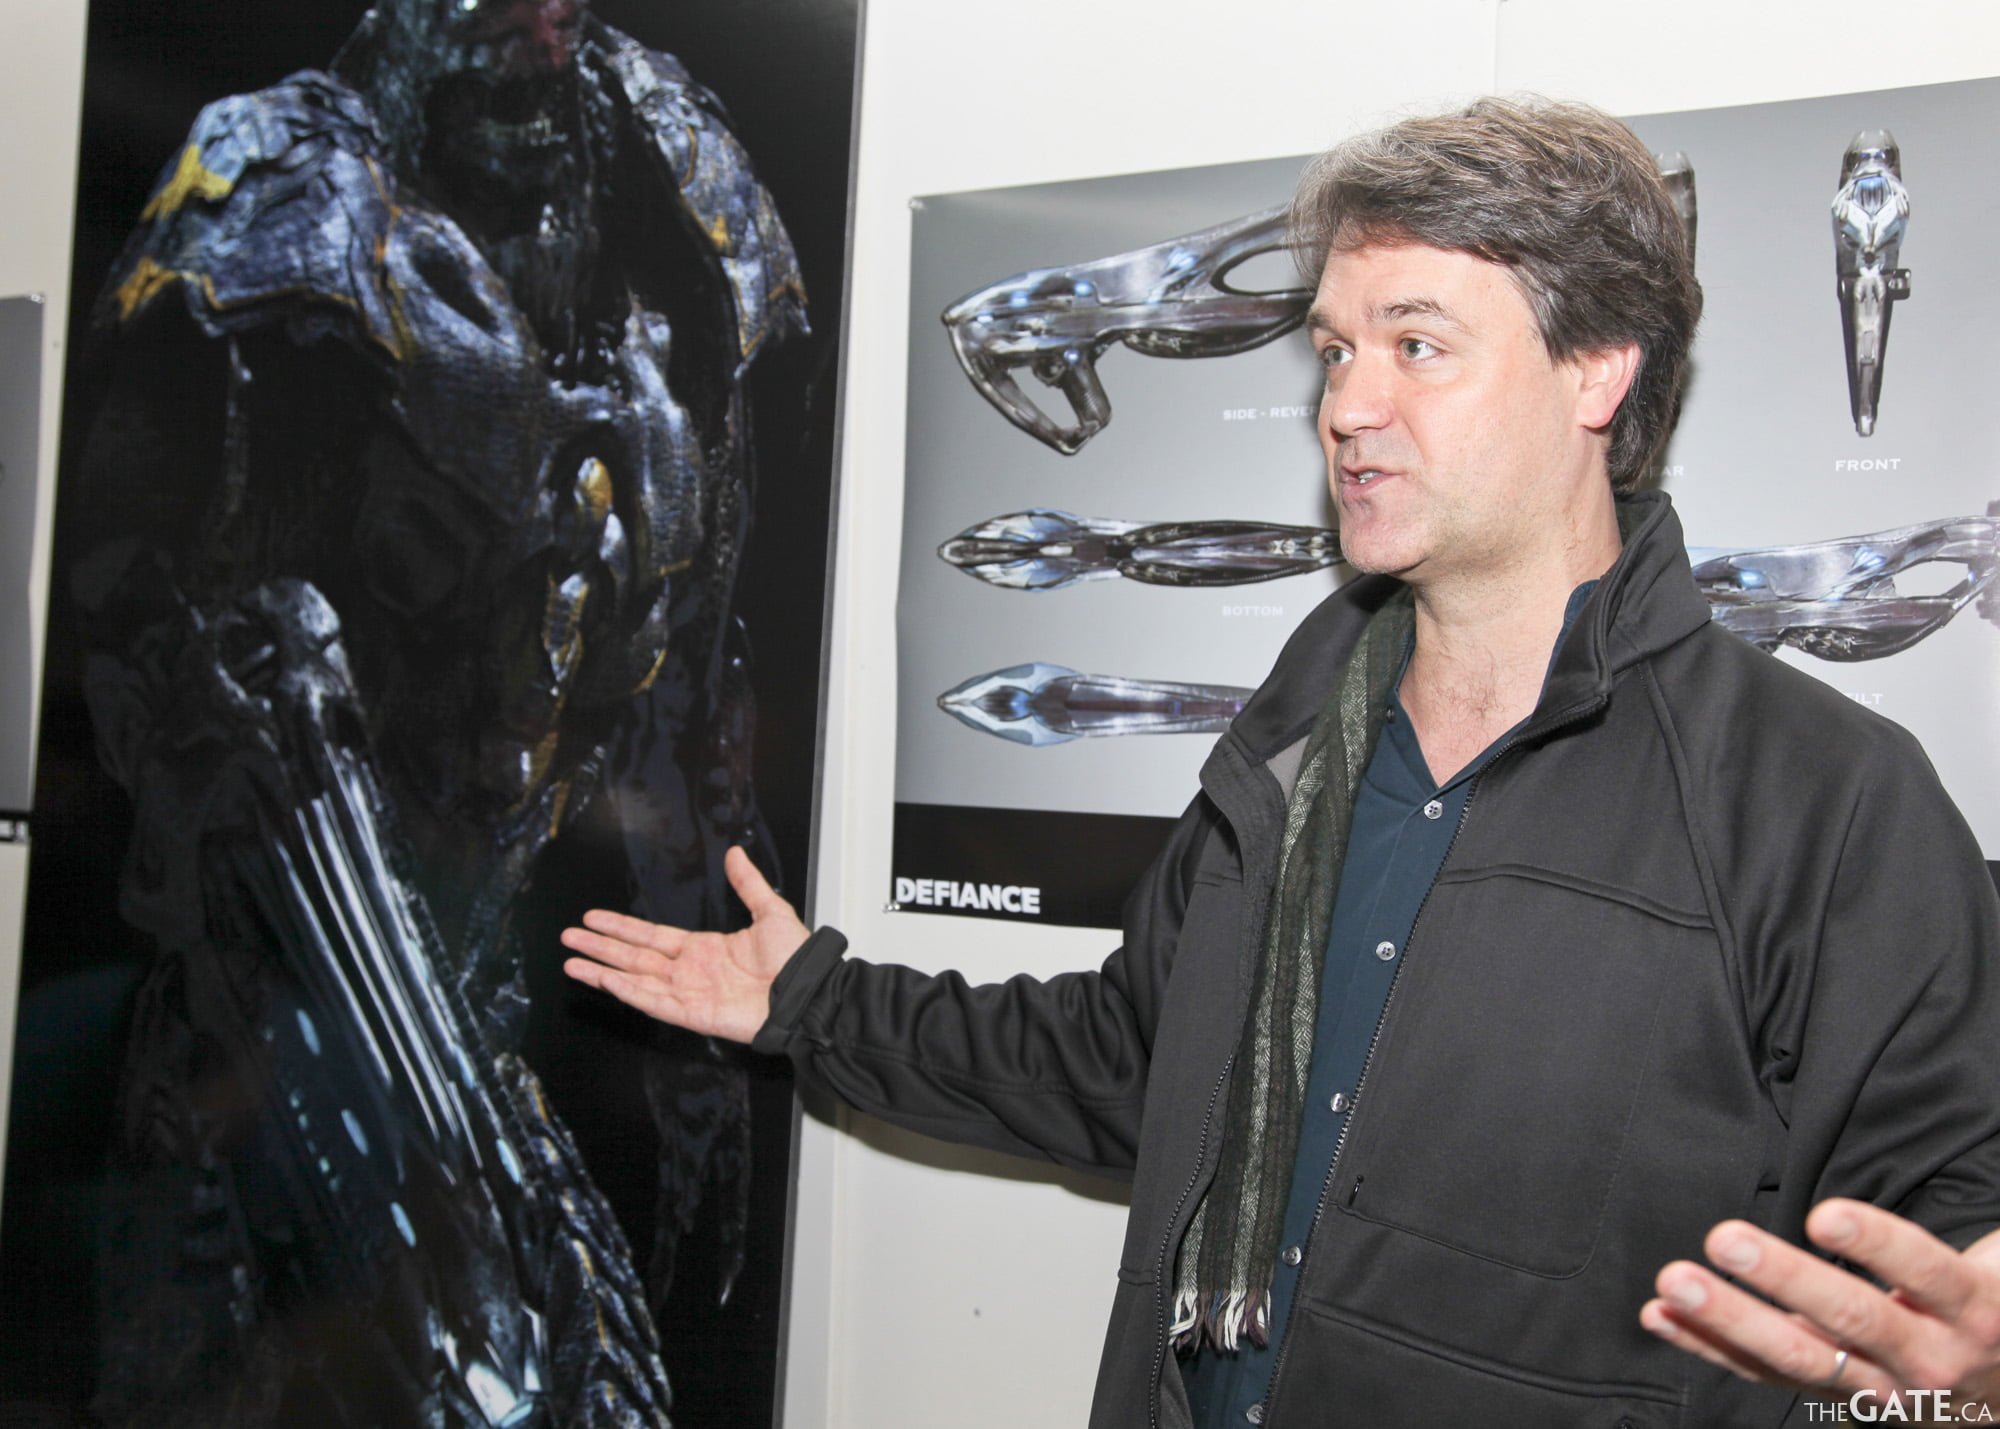 Defiance executive producer Kevin Murphy